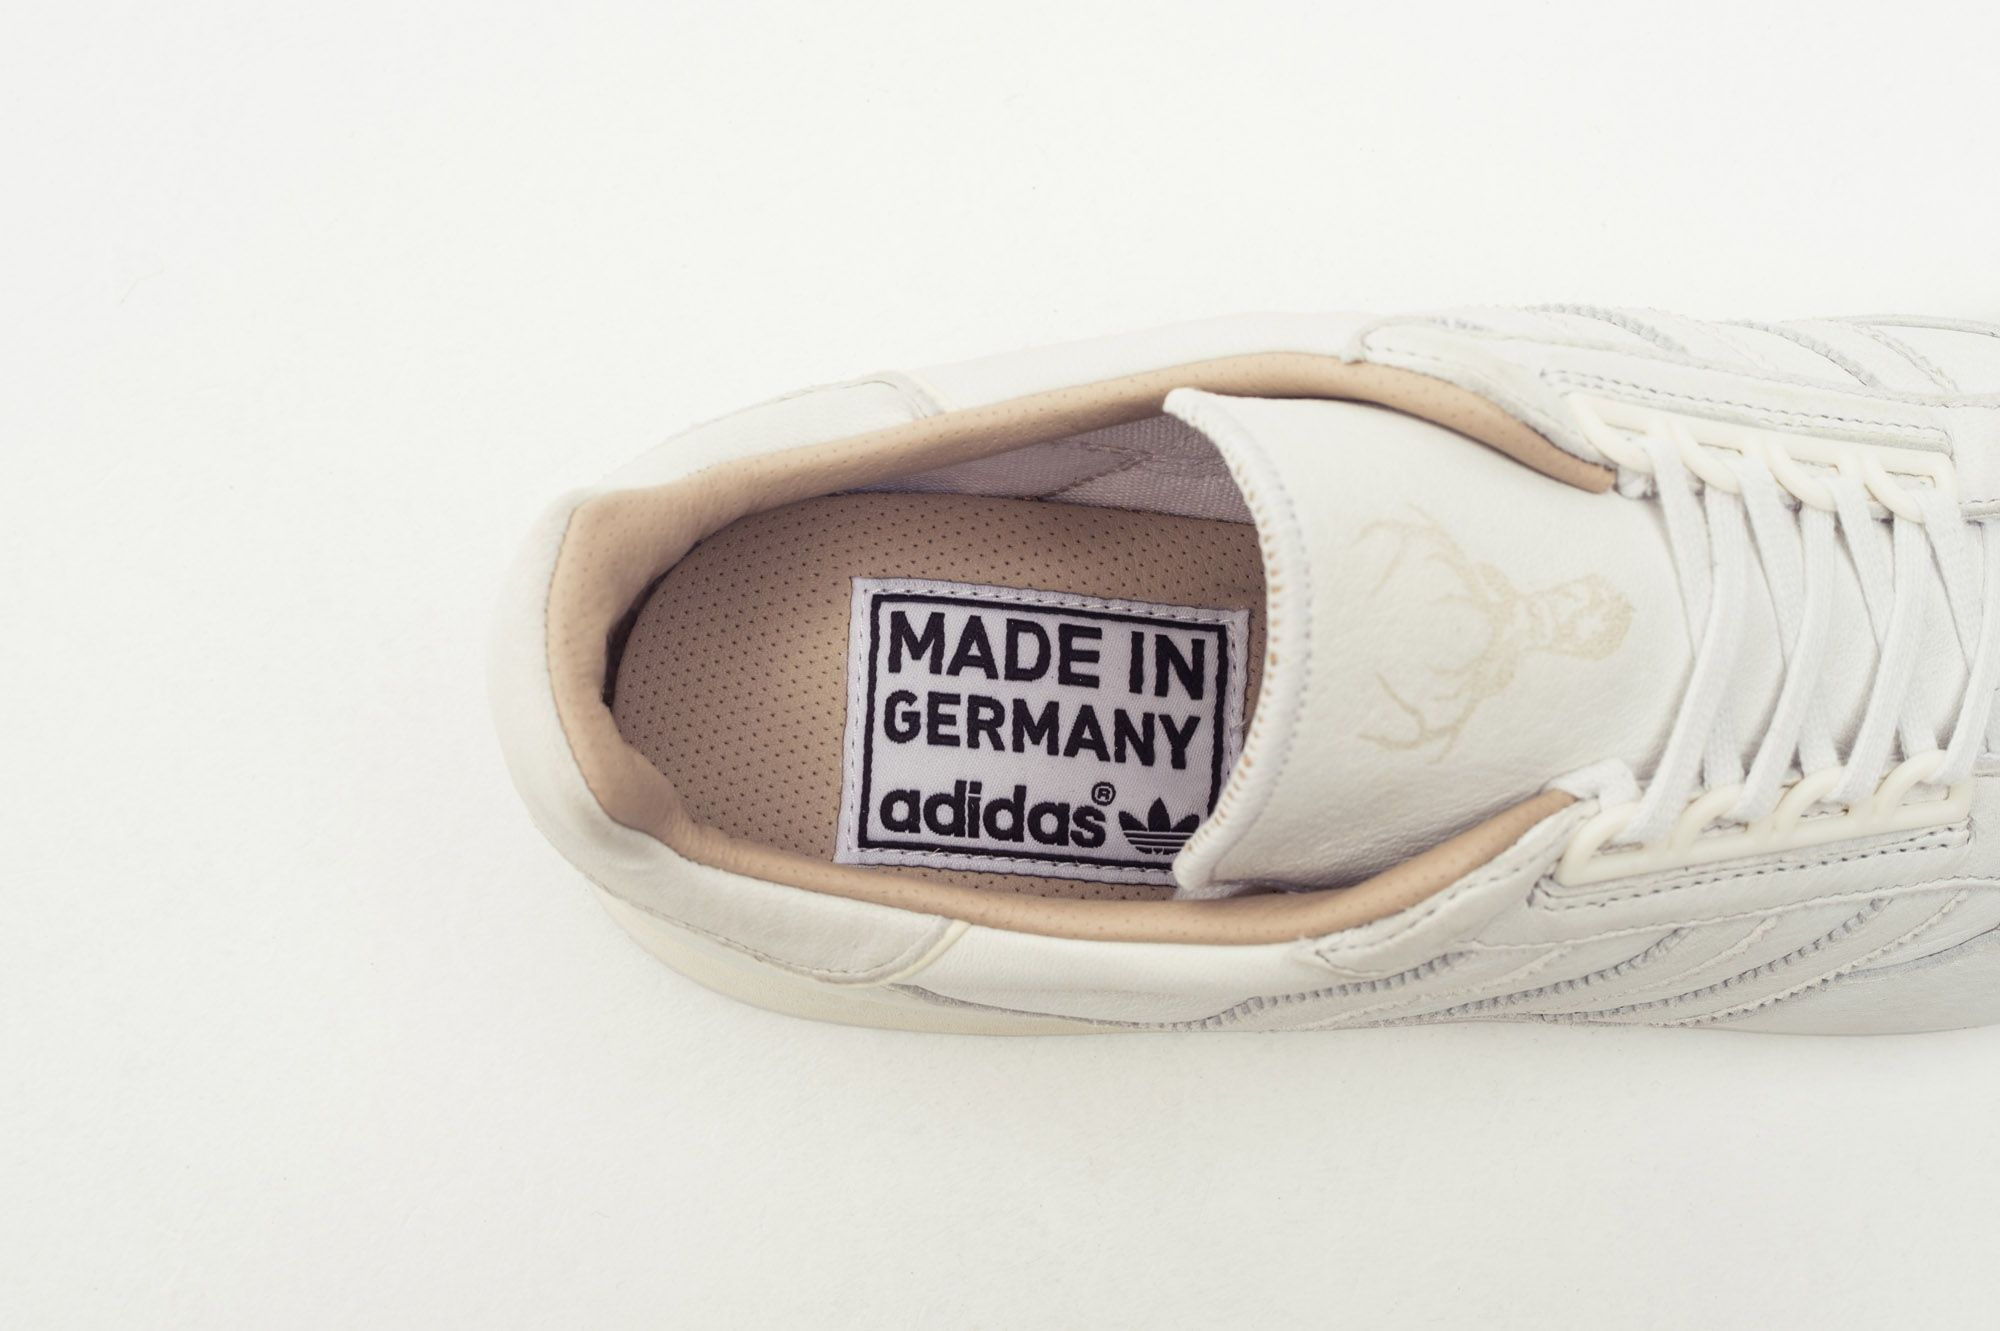 3abb6a5dfa9 adidas-made-in-germany-pack-12